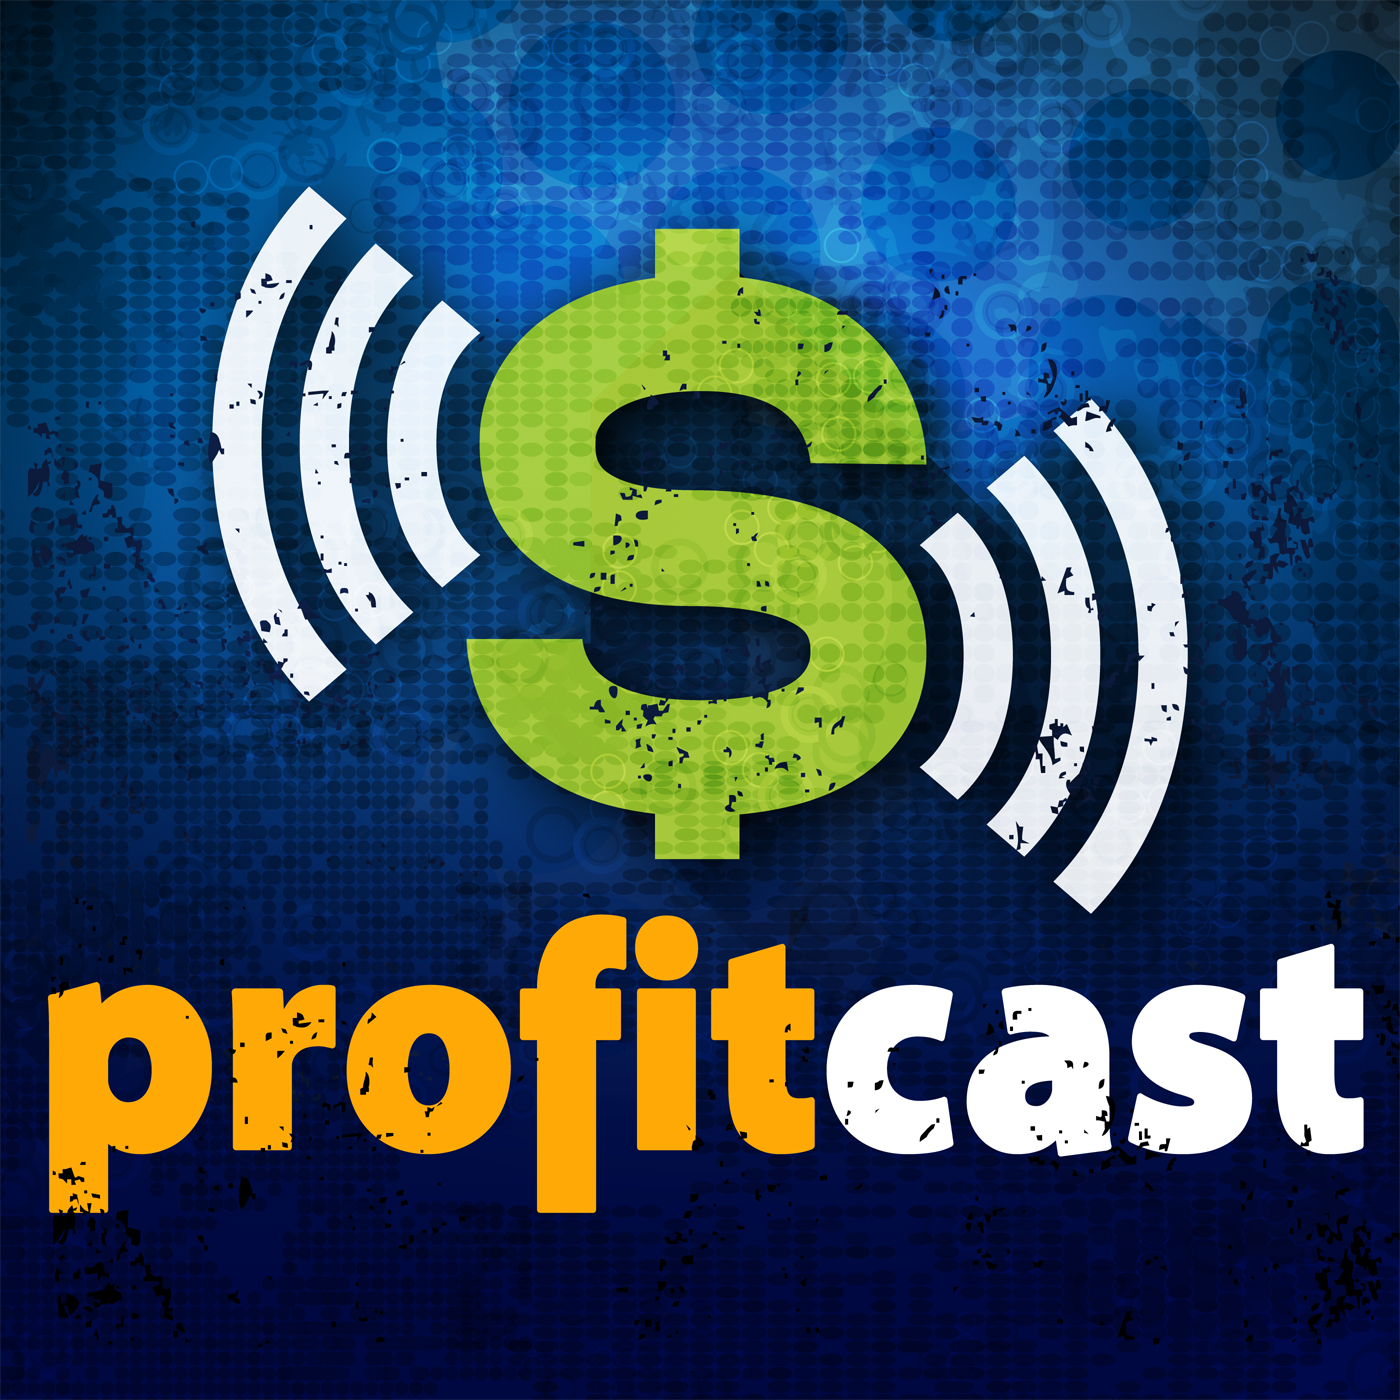 Profitcast: Monetize Your Podcast | Grow a Large and Loyal Audience